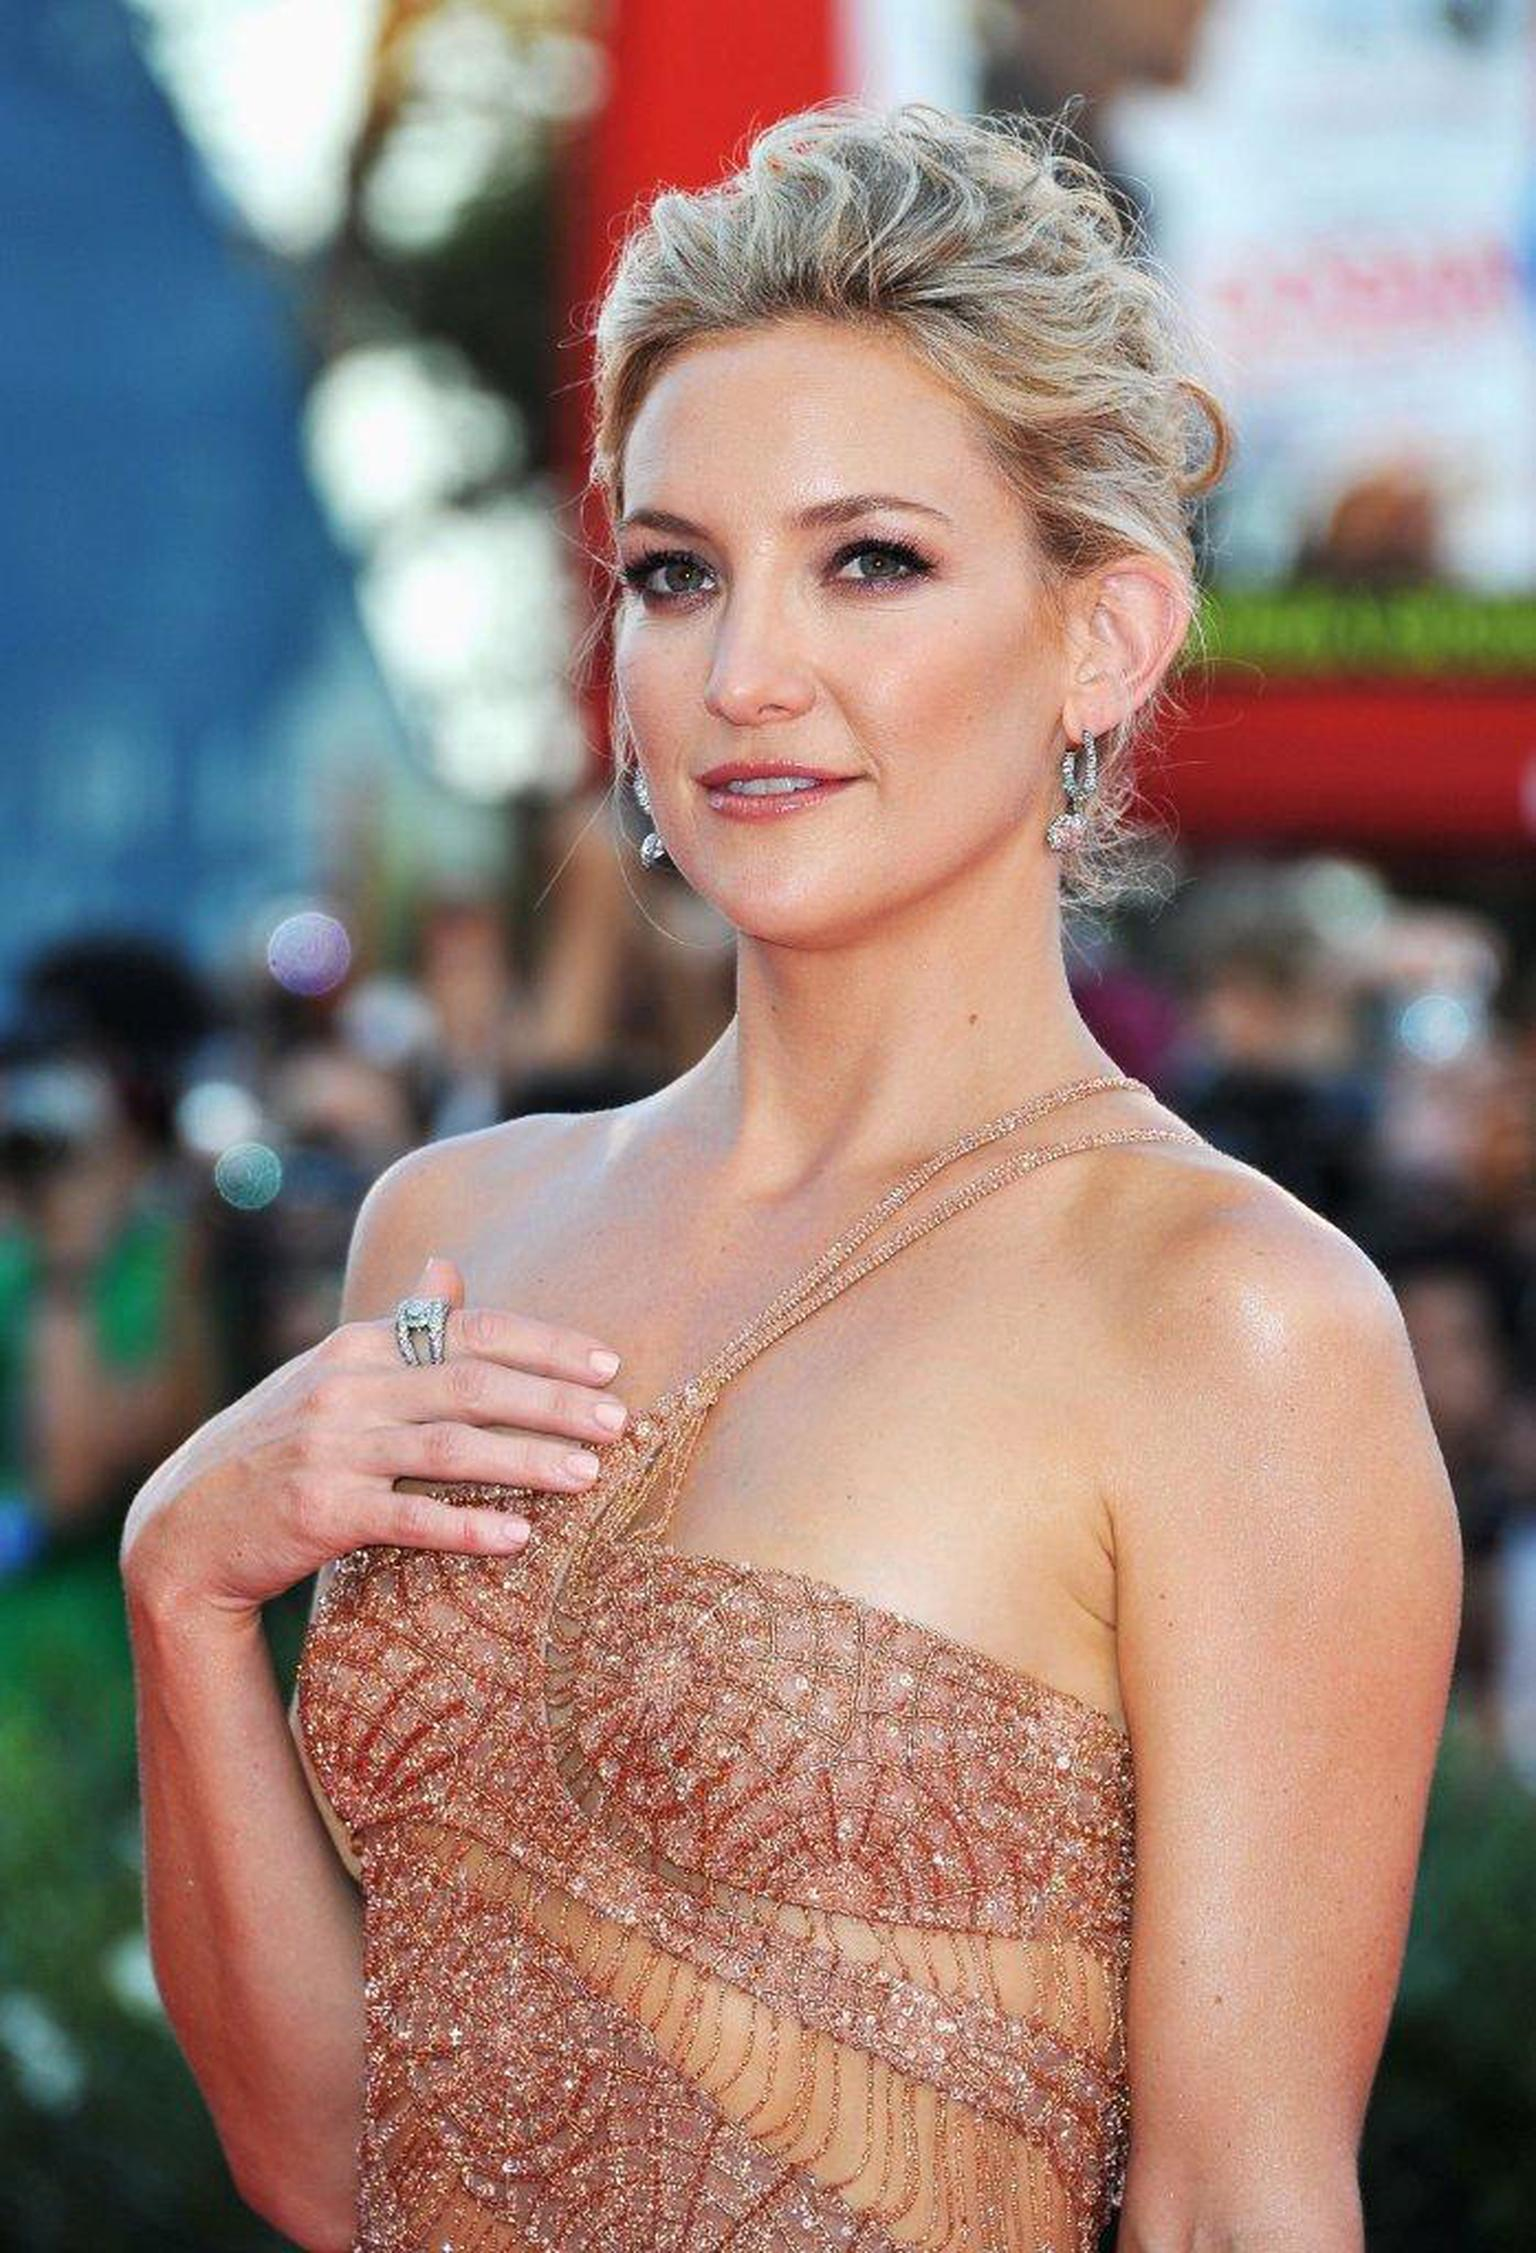 Faberge-Kate-Hudson-in-Faberge-at-Venice-Film-Festival-29.08.12-03.jpg